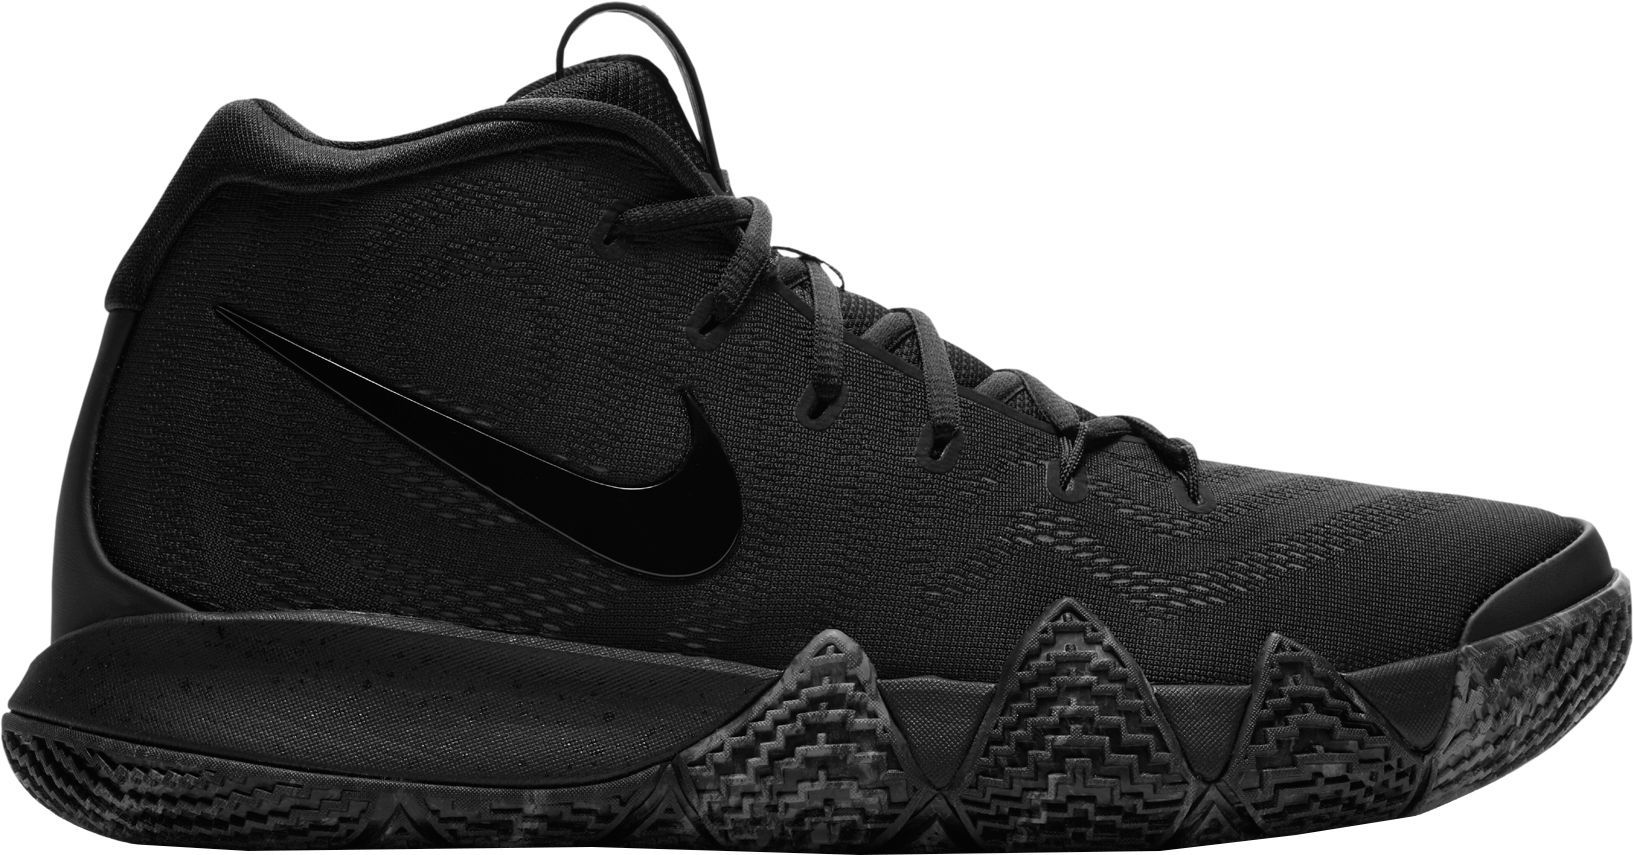 reputable site d350e f7d38 Nike Kyrie 4 Basketball Shoes, Women's, Size: M18/W19.5 ...